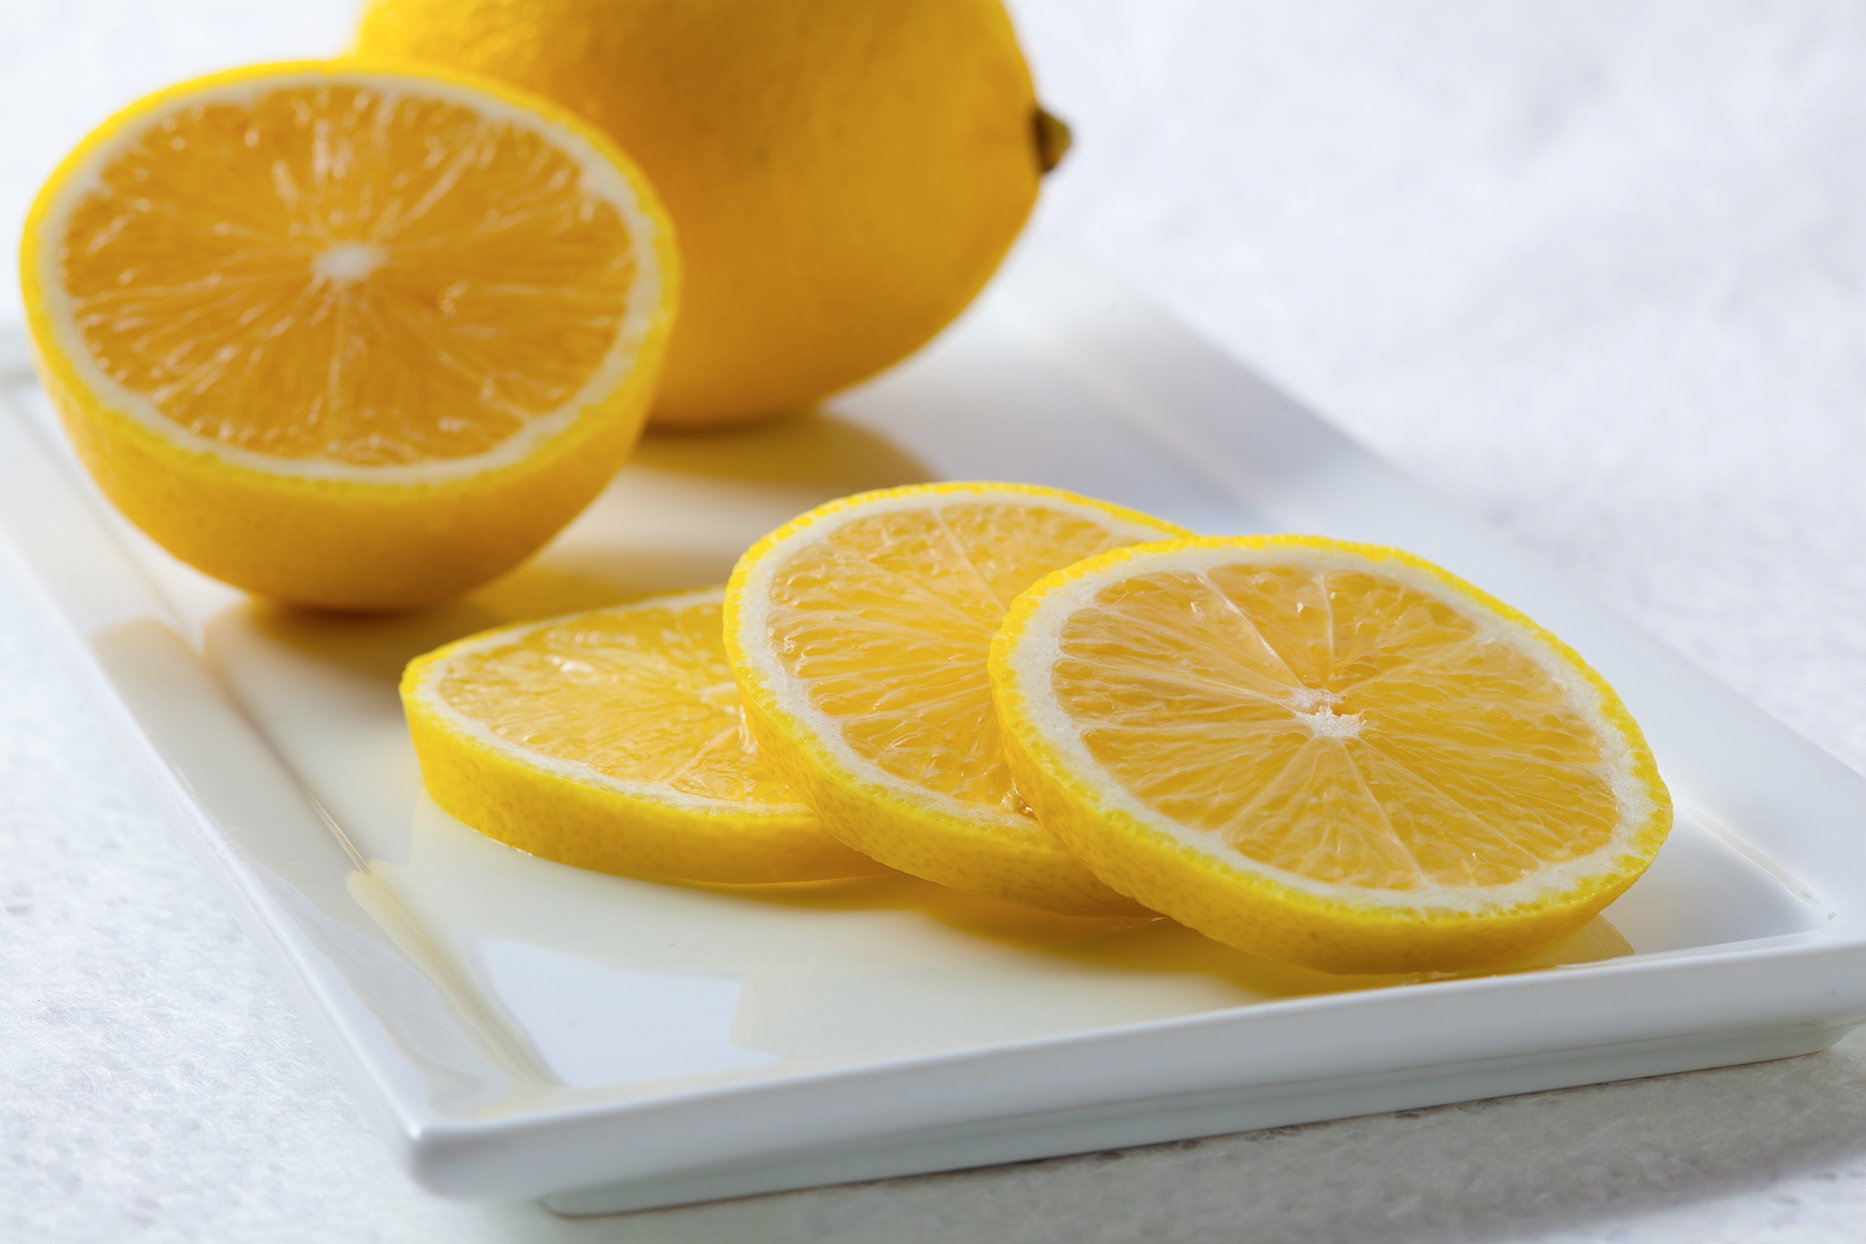 slices of lemon with whole lemon on cutting board